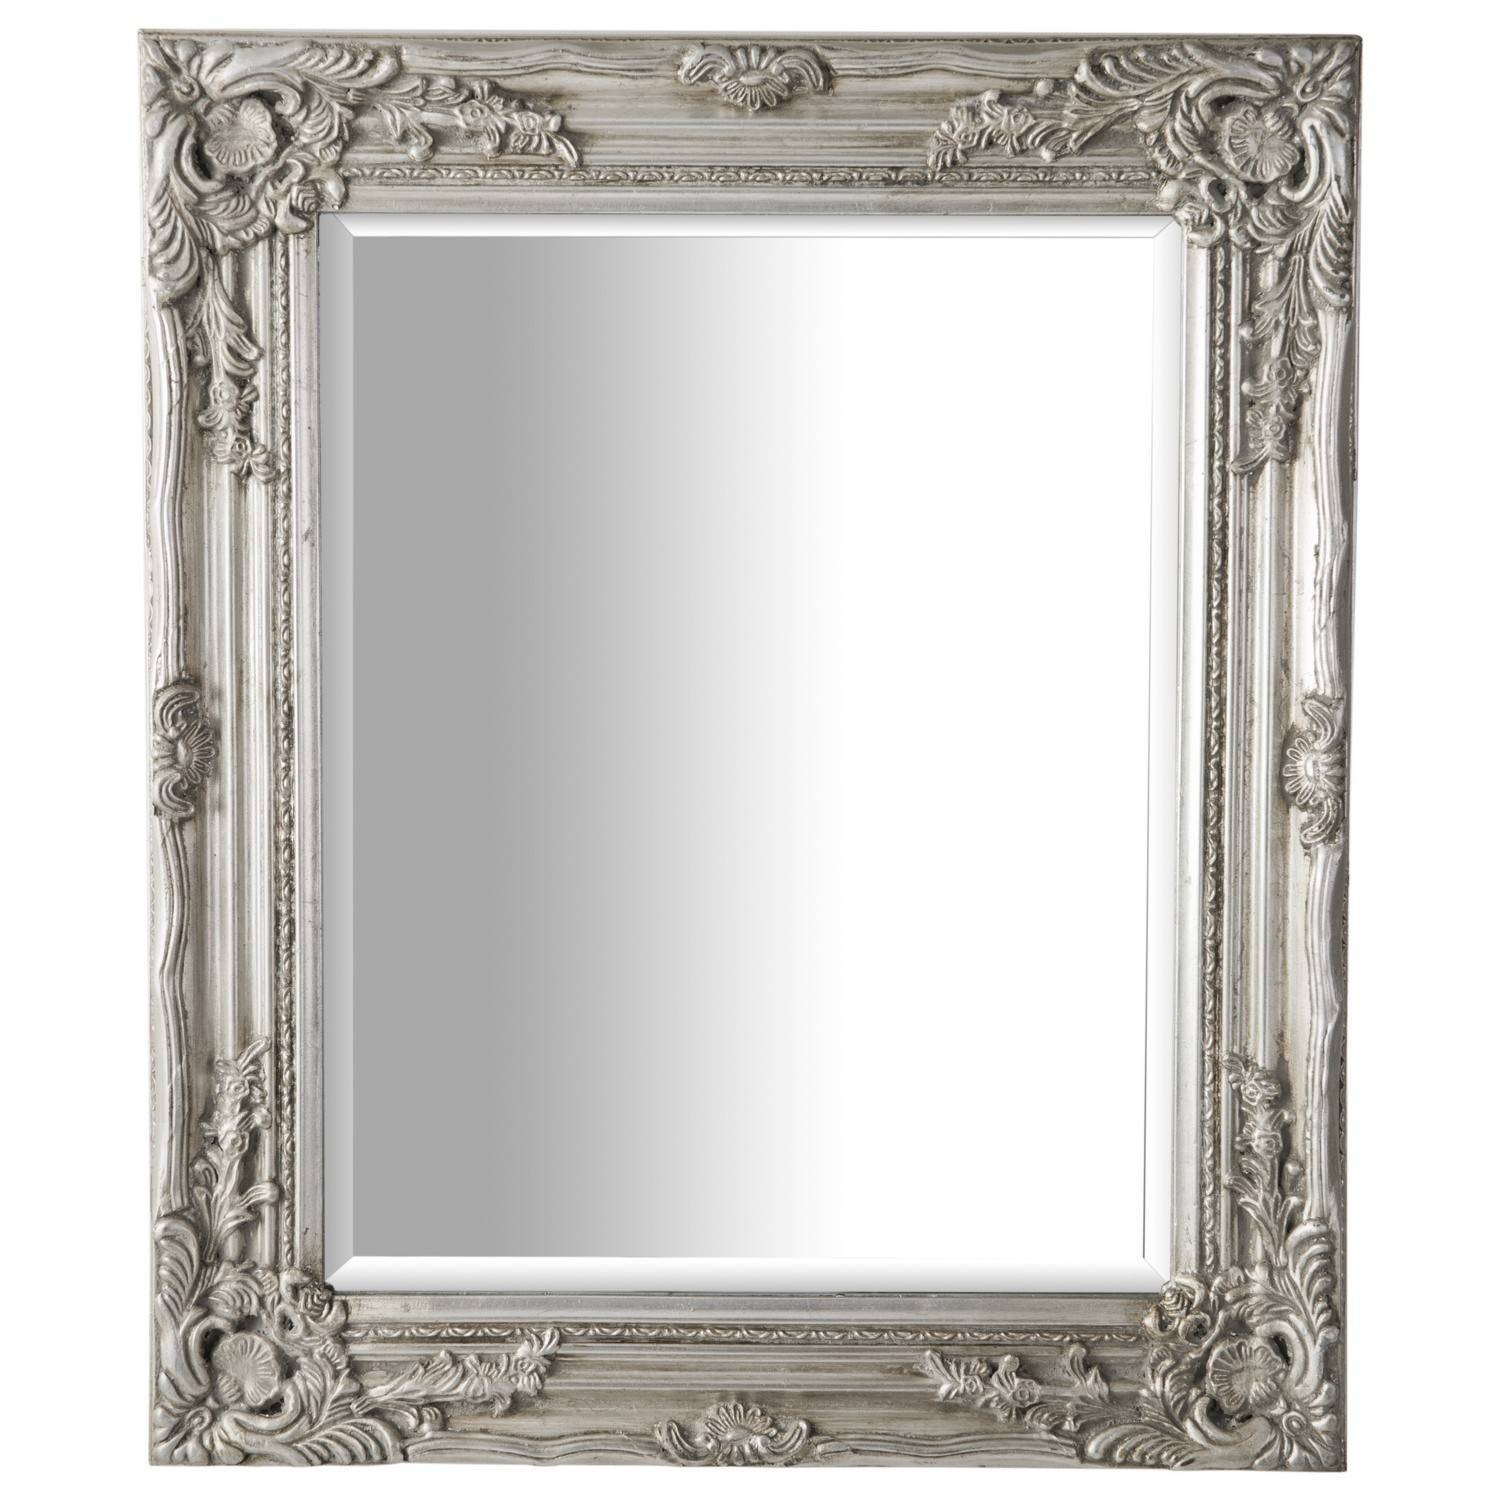 Antique Ornate Mirror Silver in Silver Antique Mirrors (Image 4 of 25)